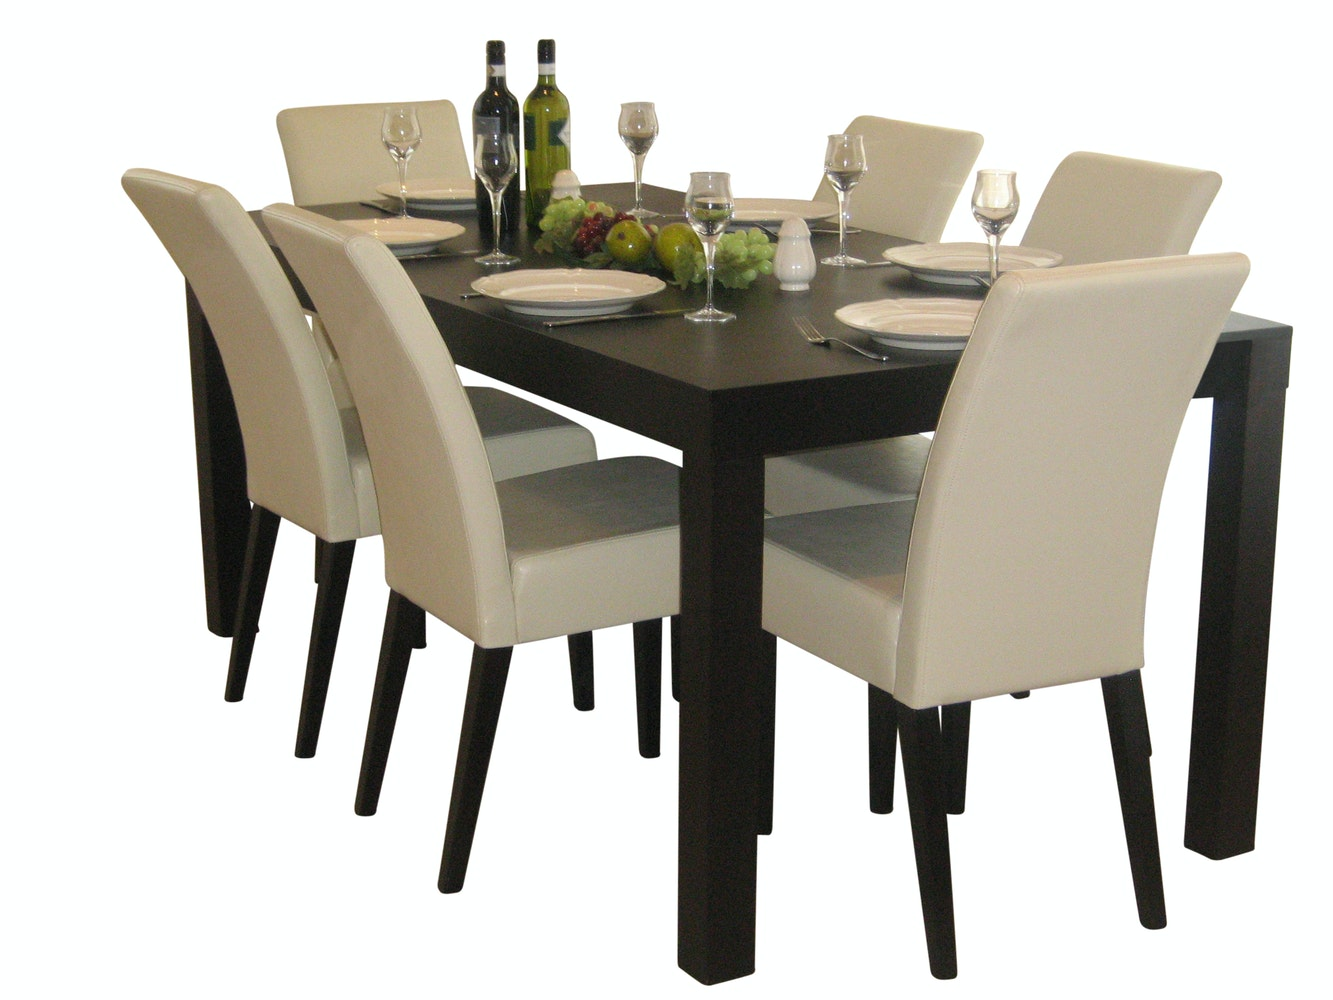 Bt ray 7 piece dining suite dining settings for sale in for Outdoor furniture yagoona